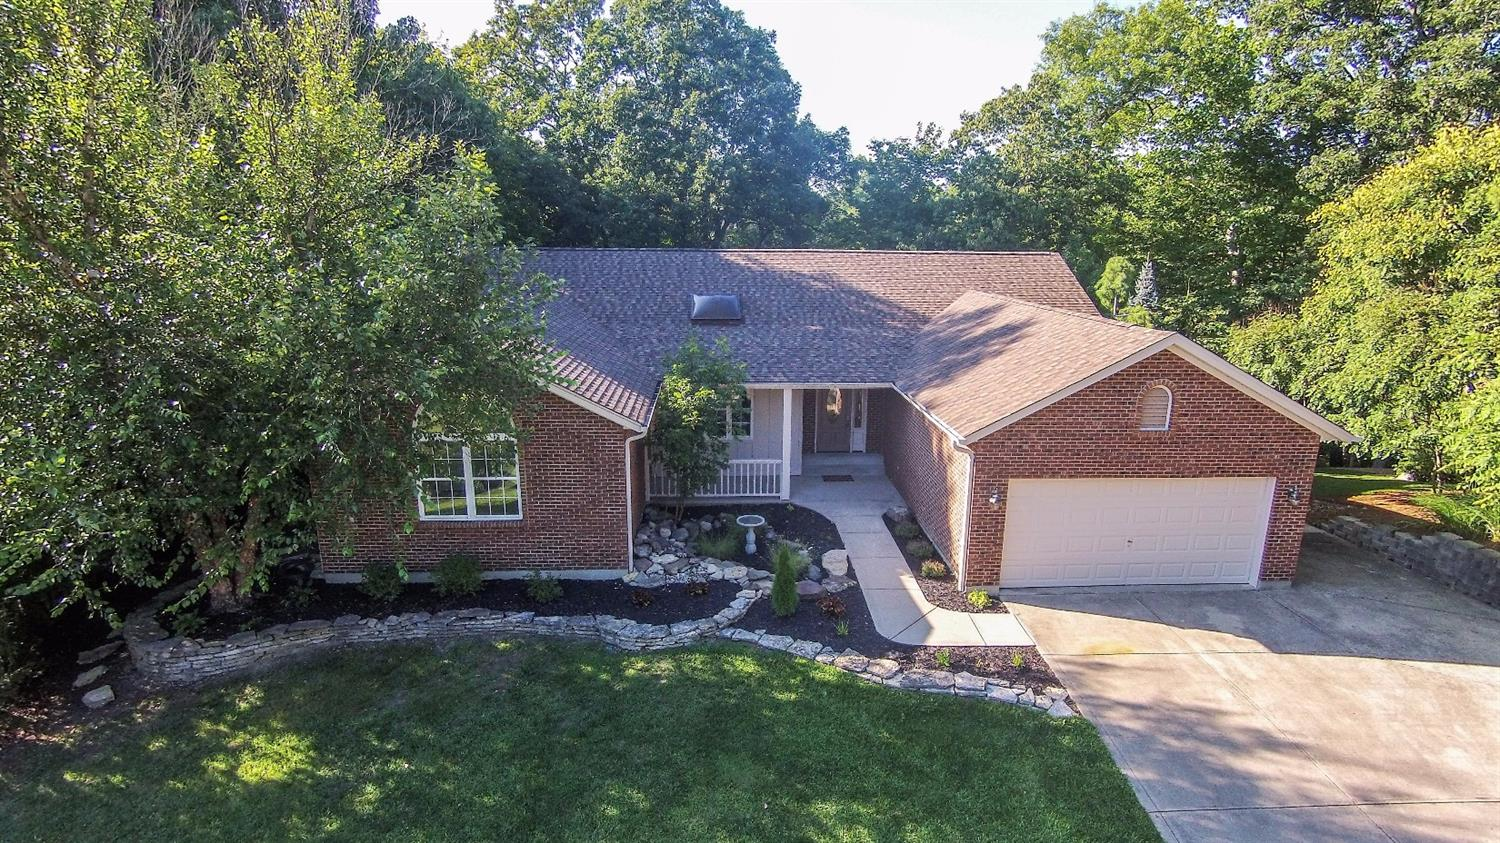 1703 Cottontail Drive, Miami Twp, OH 45150